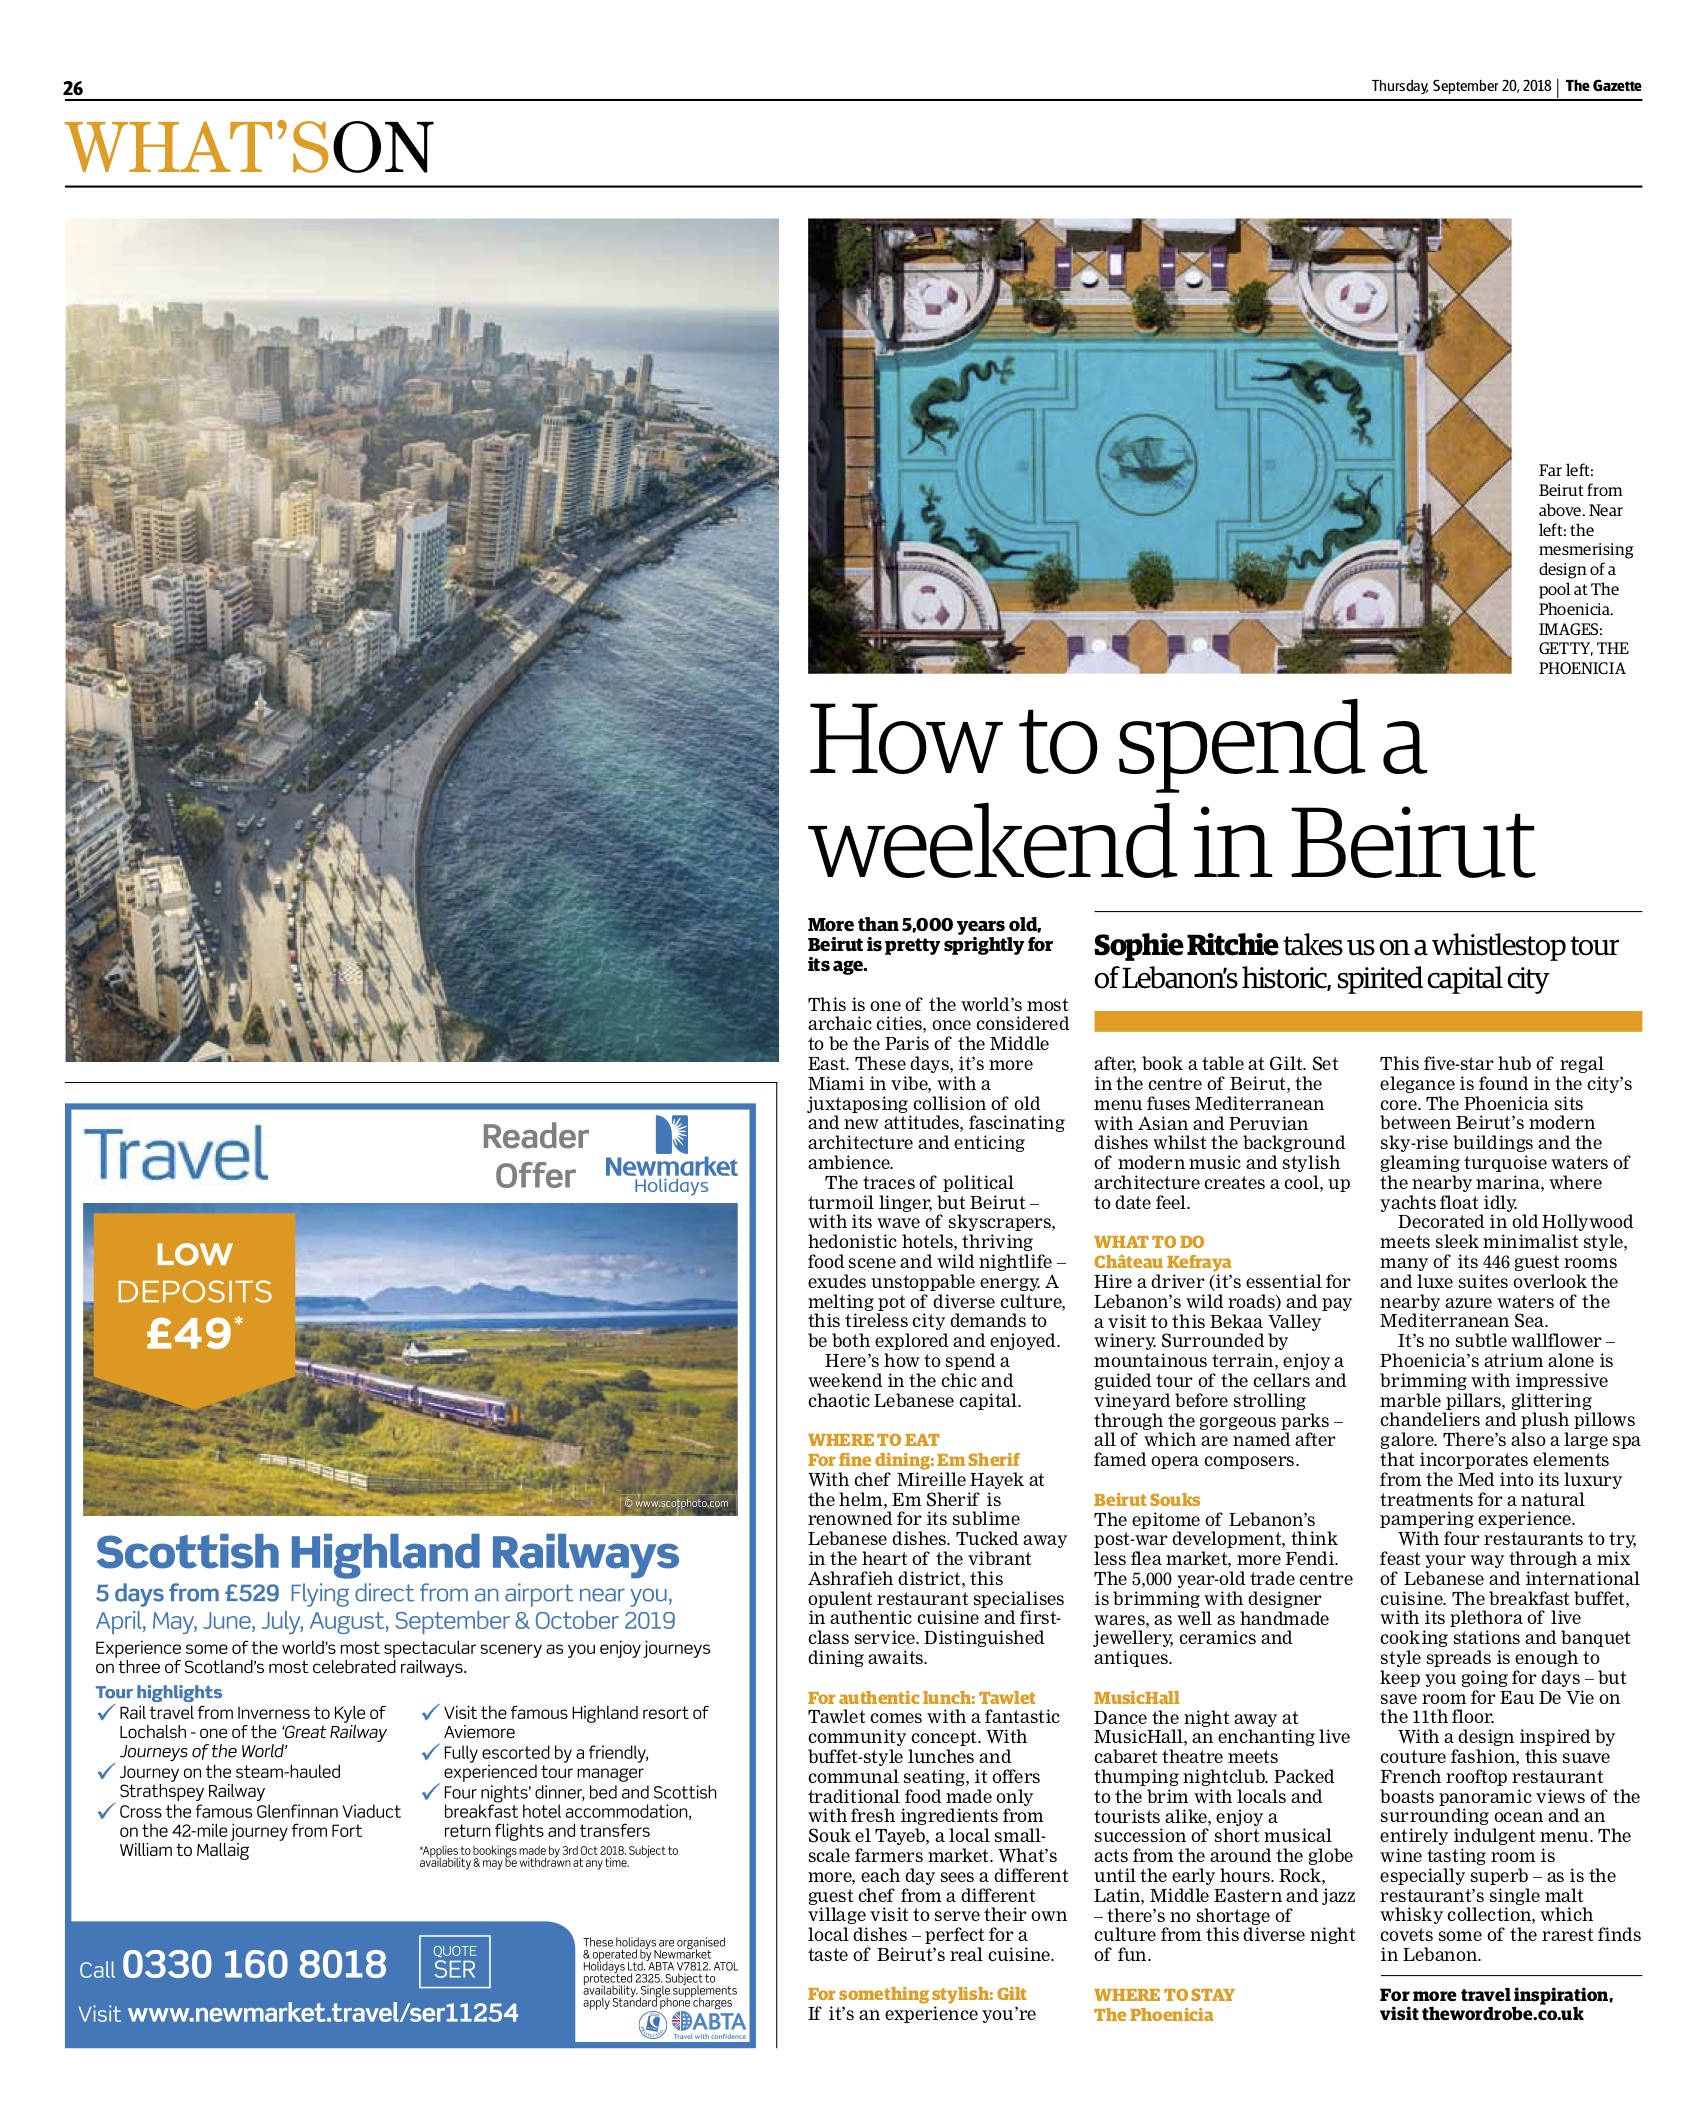 Beirut feature